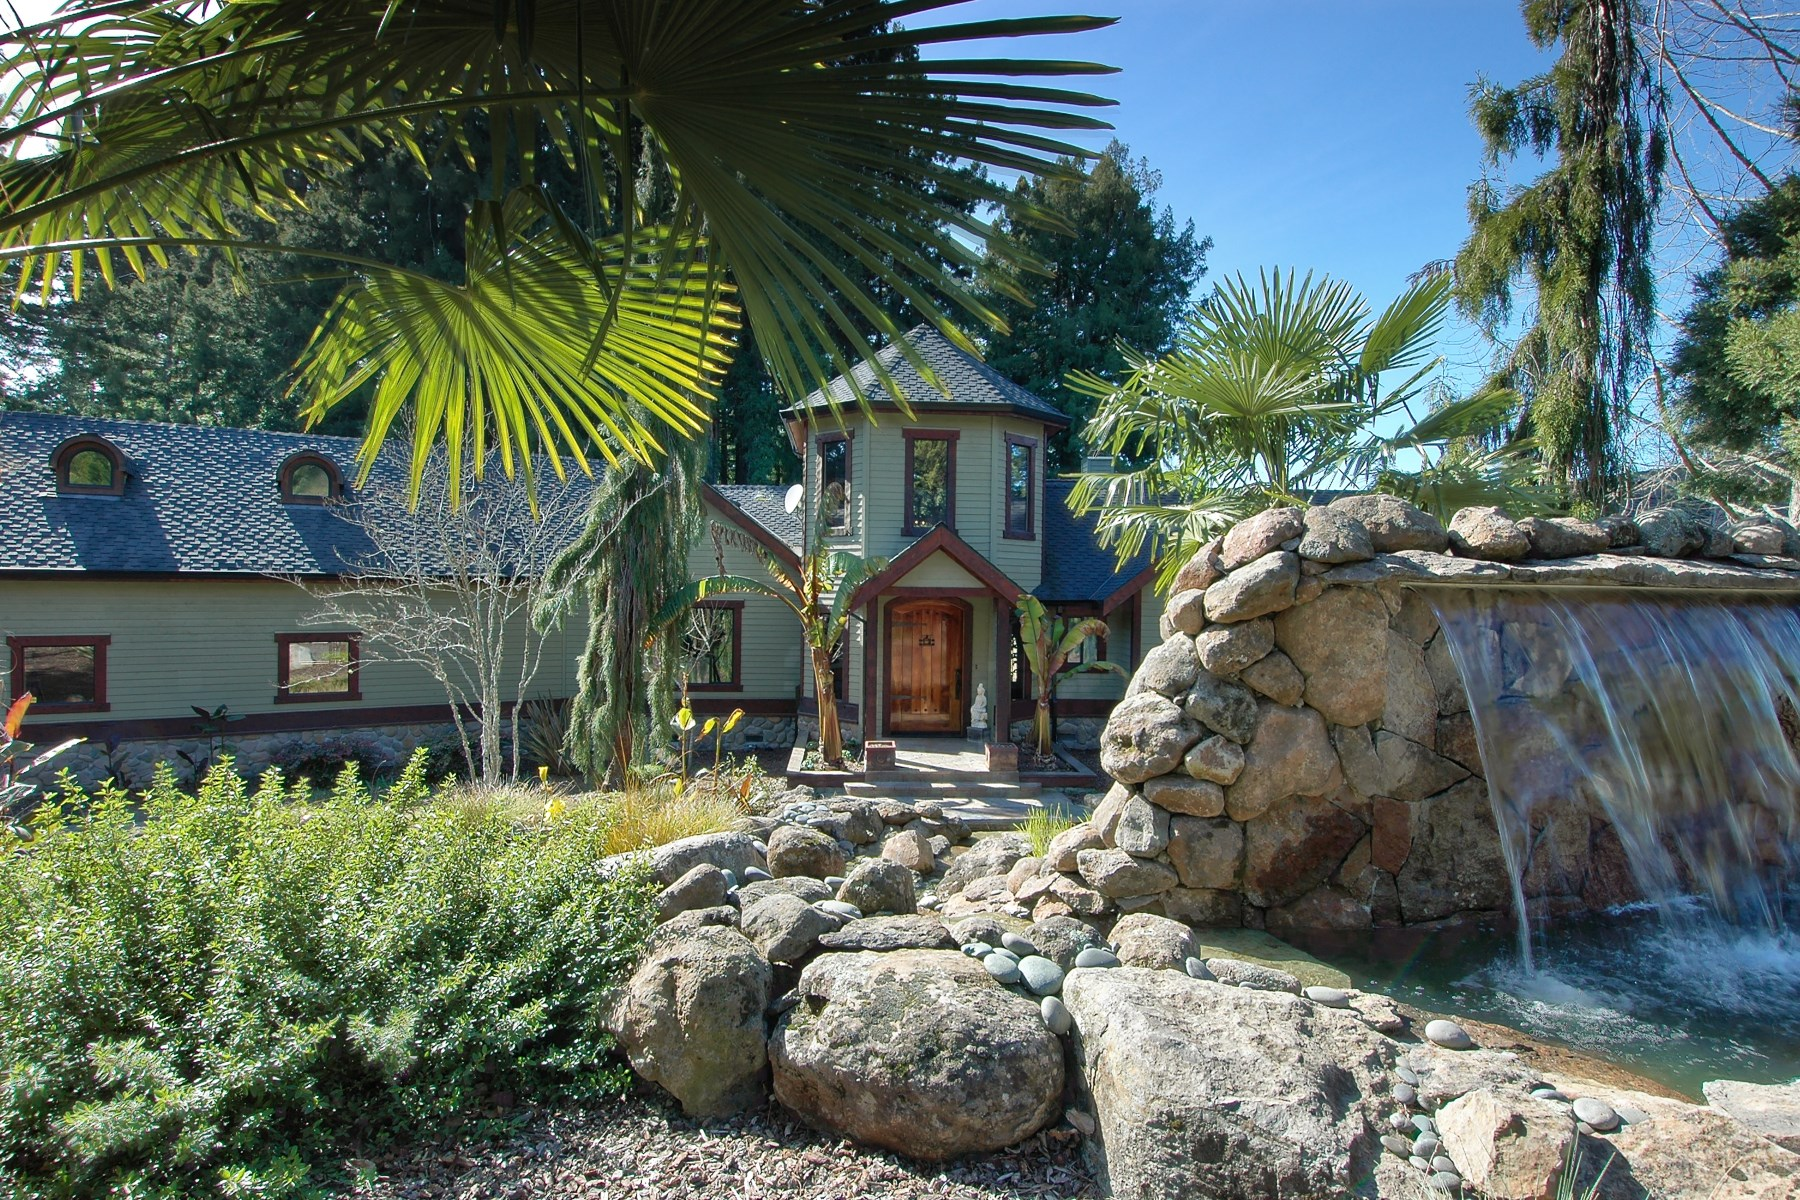 Single Family Home for Sale at An Enchanting Estate 11100 Falstaff Rd Sebastopol, California 95472 United States